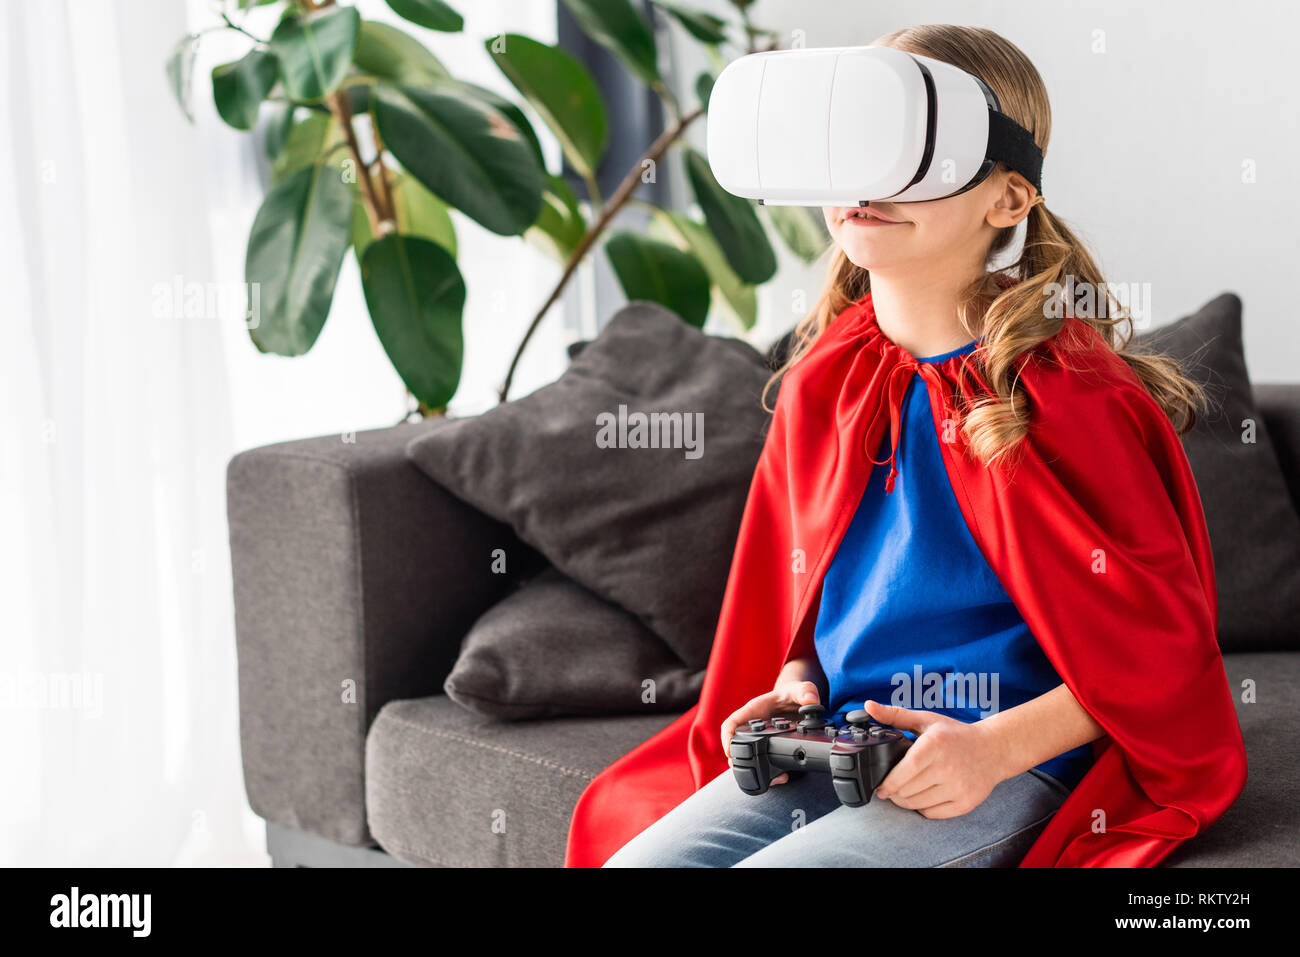 82465624fac Cute kid in red cloak and virtual reality headset playing video game - Stock  Image